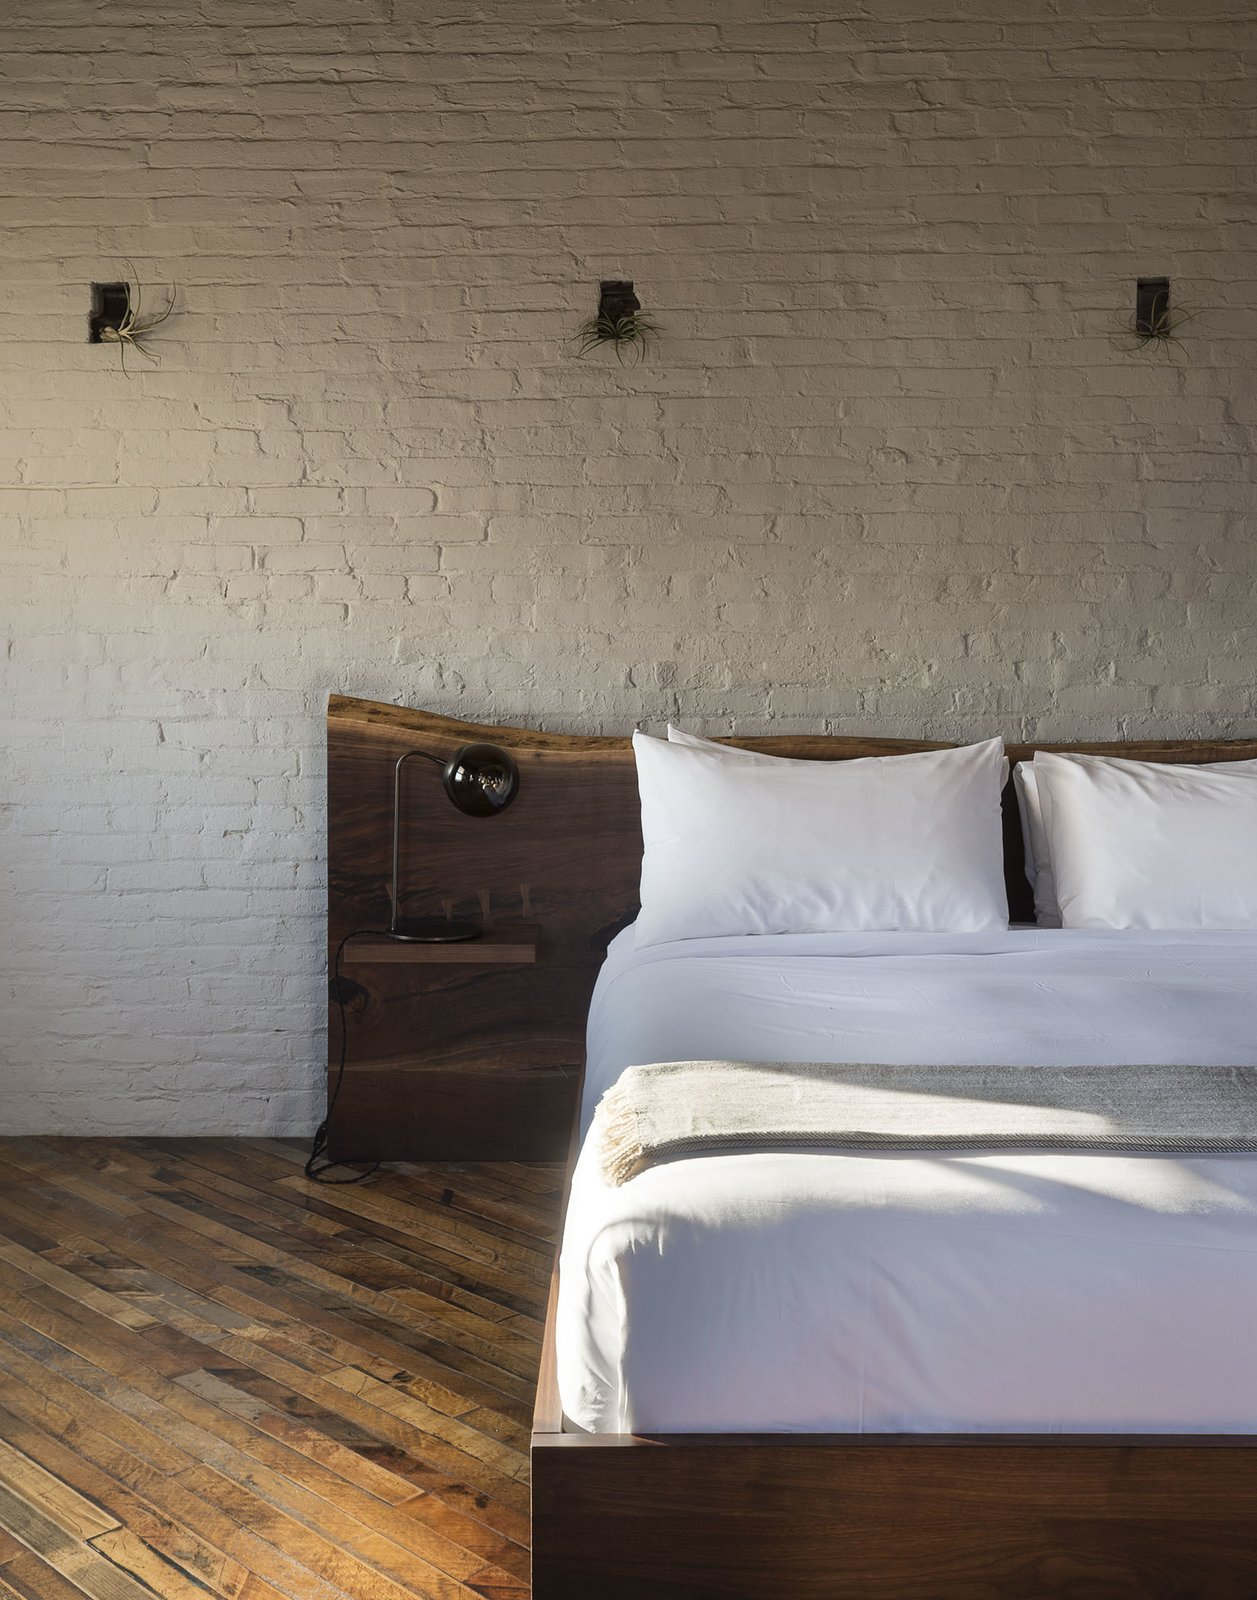 Tagged: Bedroom, Bed, Lamps, and Medium Hardwood Floor.  Mulherin's Hotel by Daniel Olsovsky